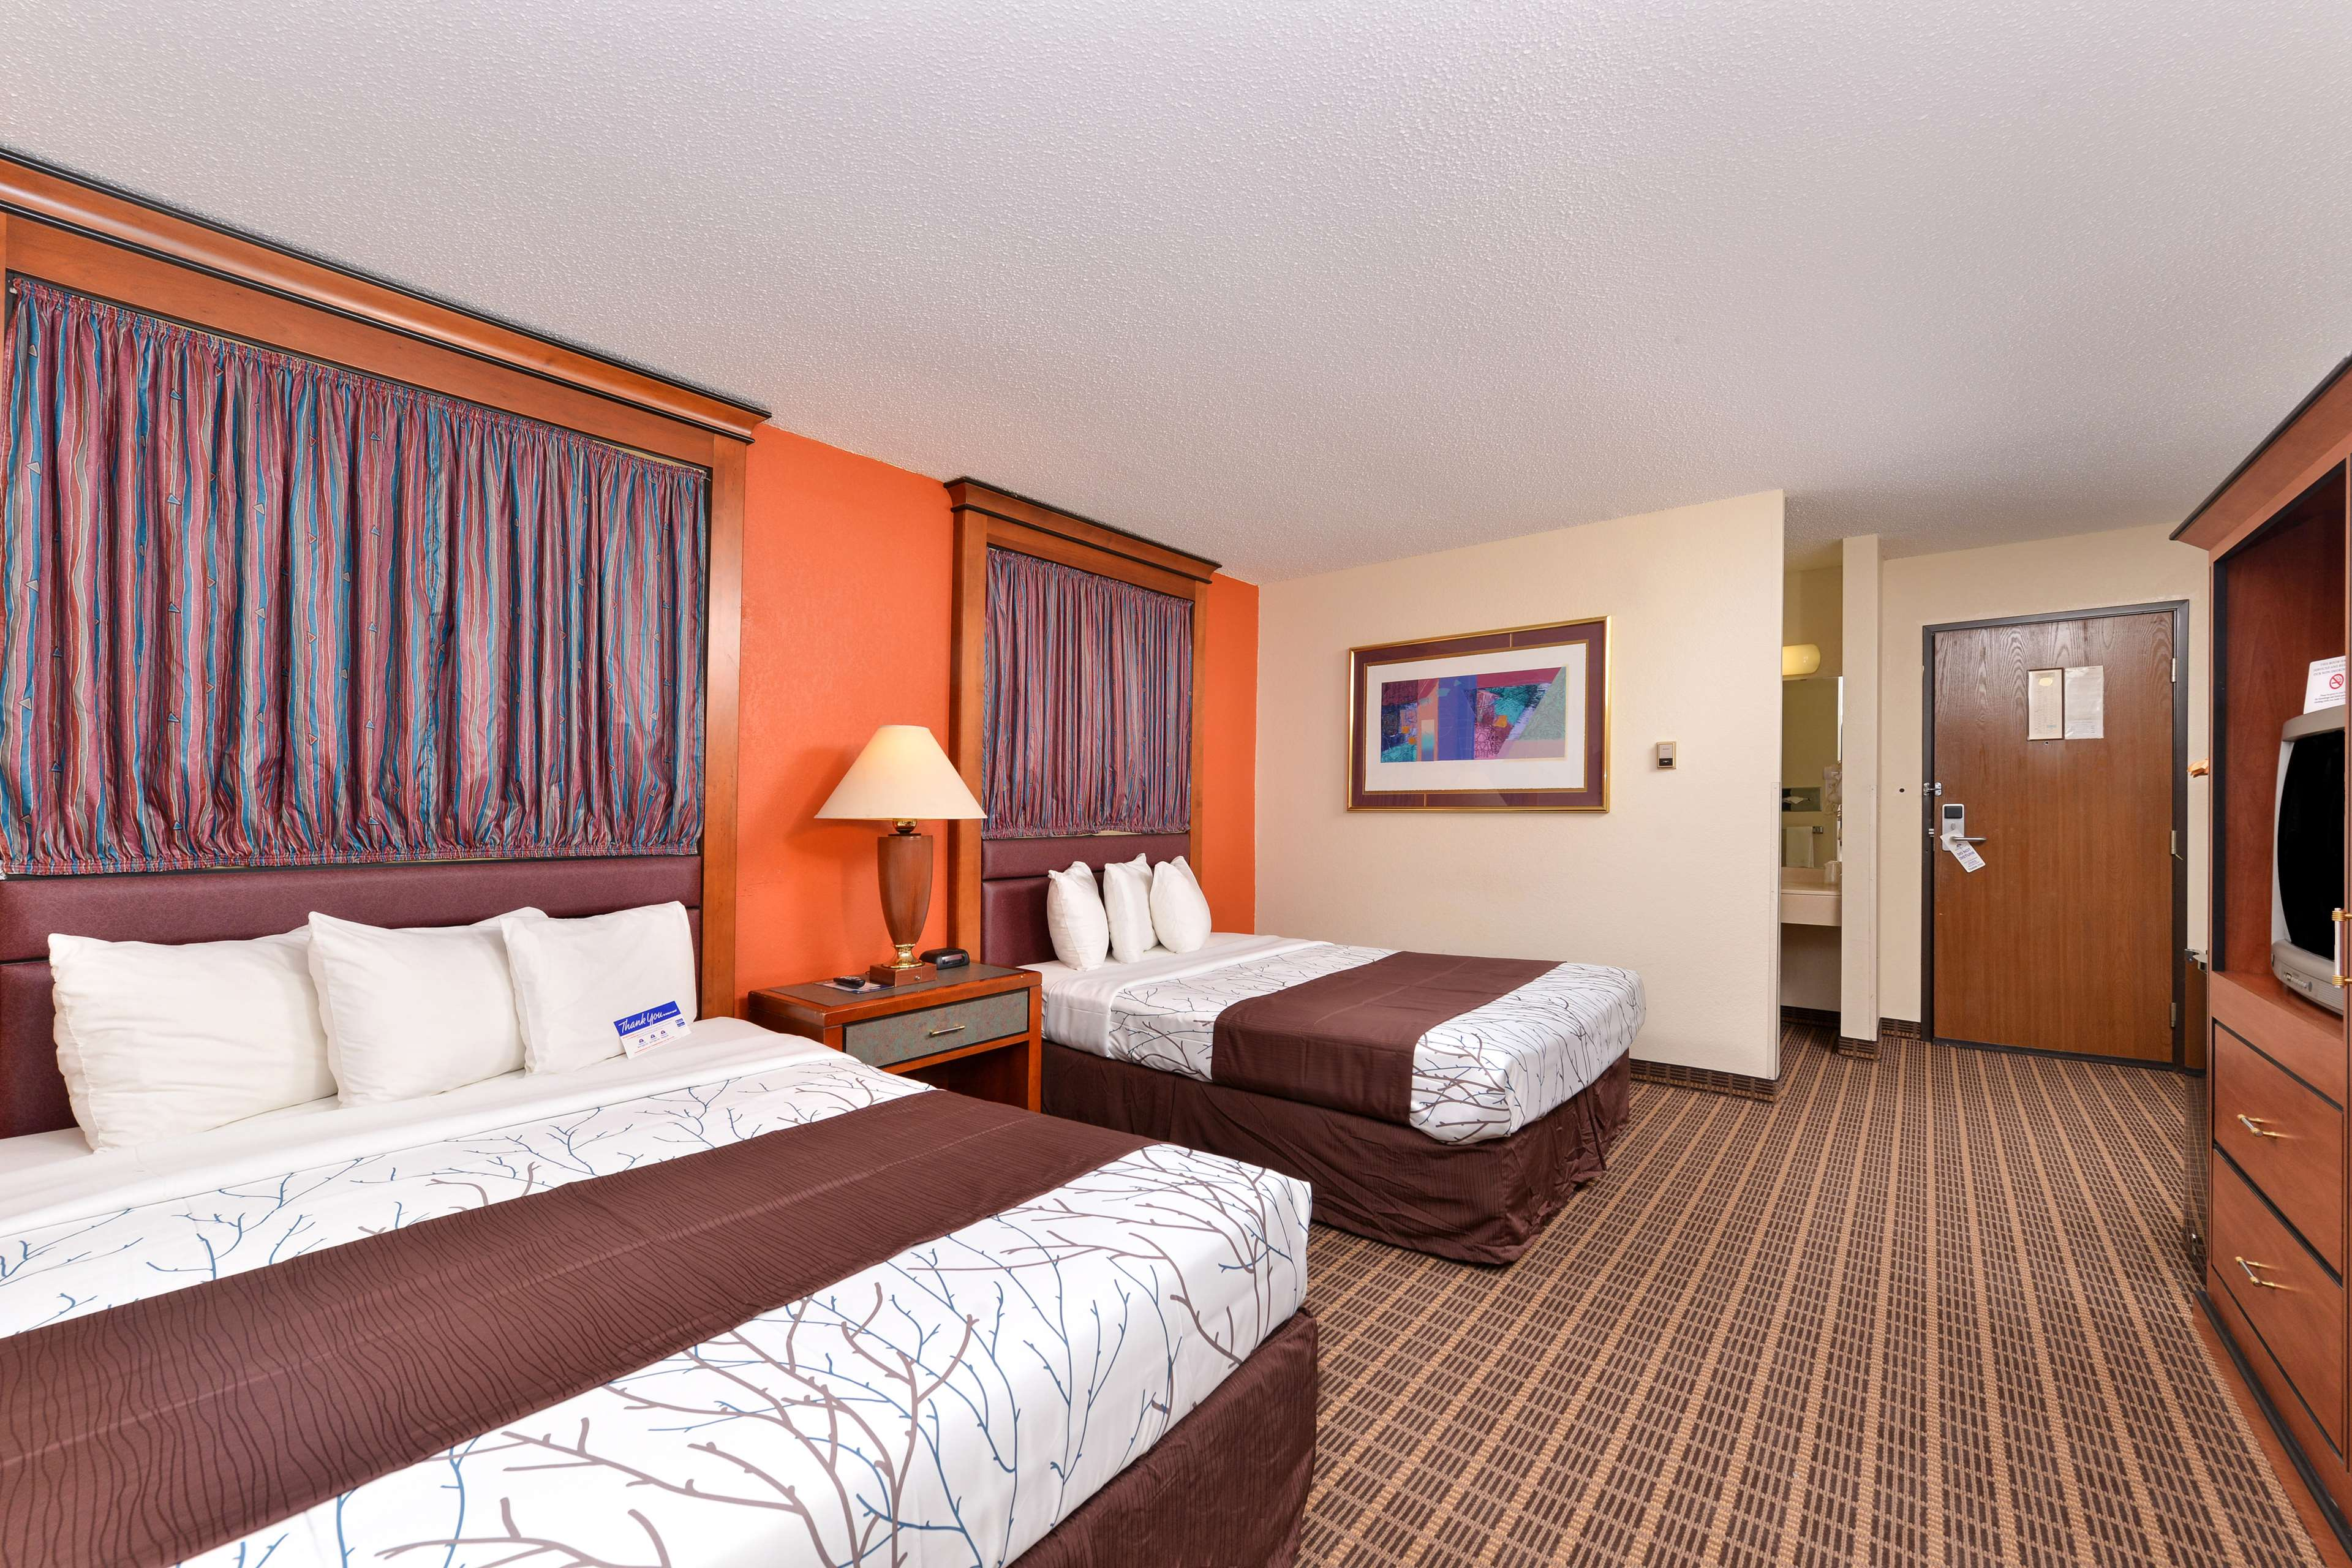 Hotels In Stillwater Mn Area